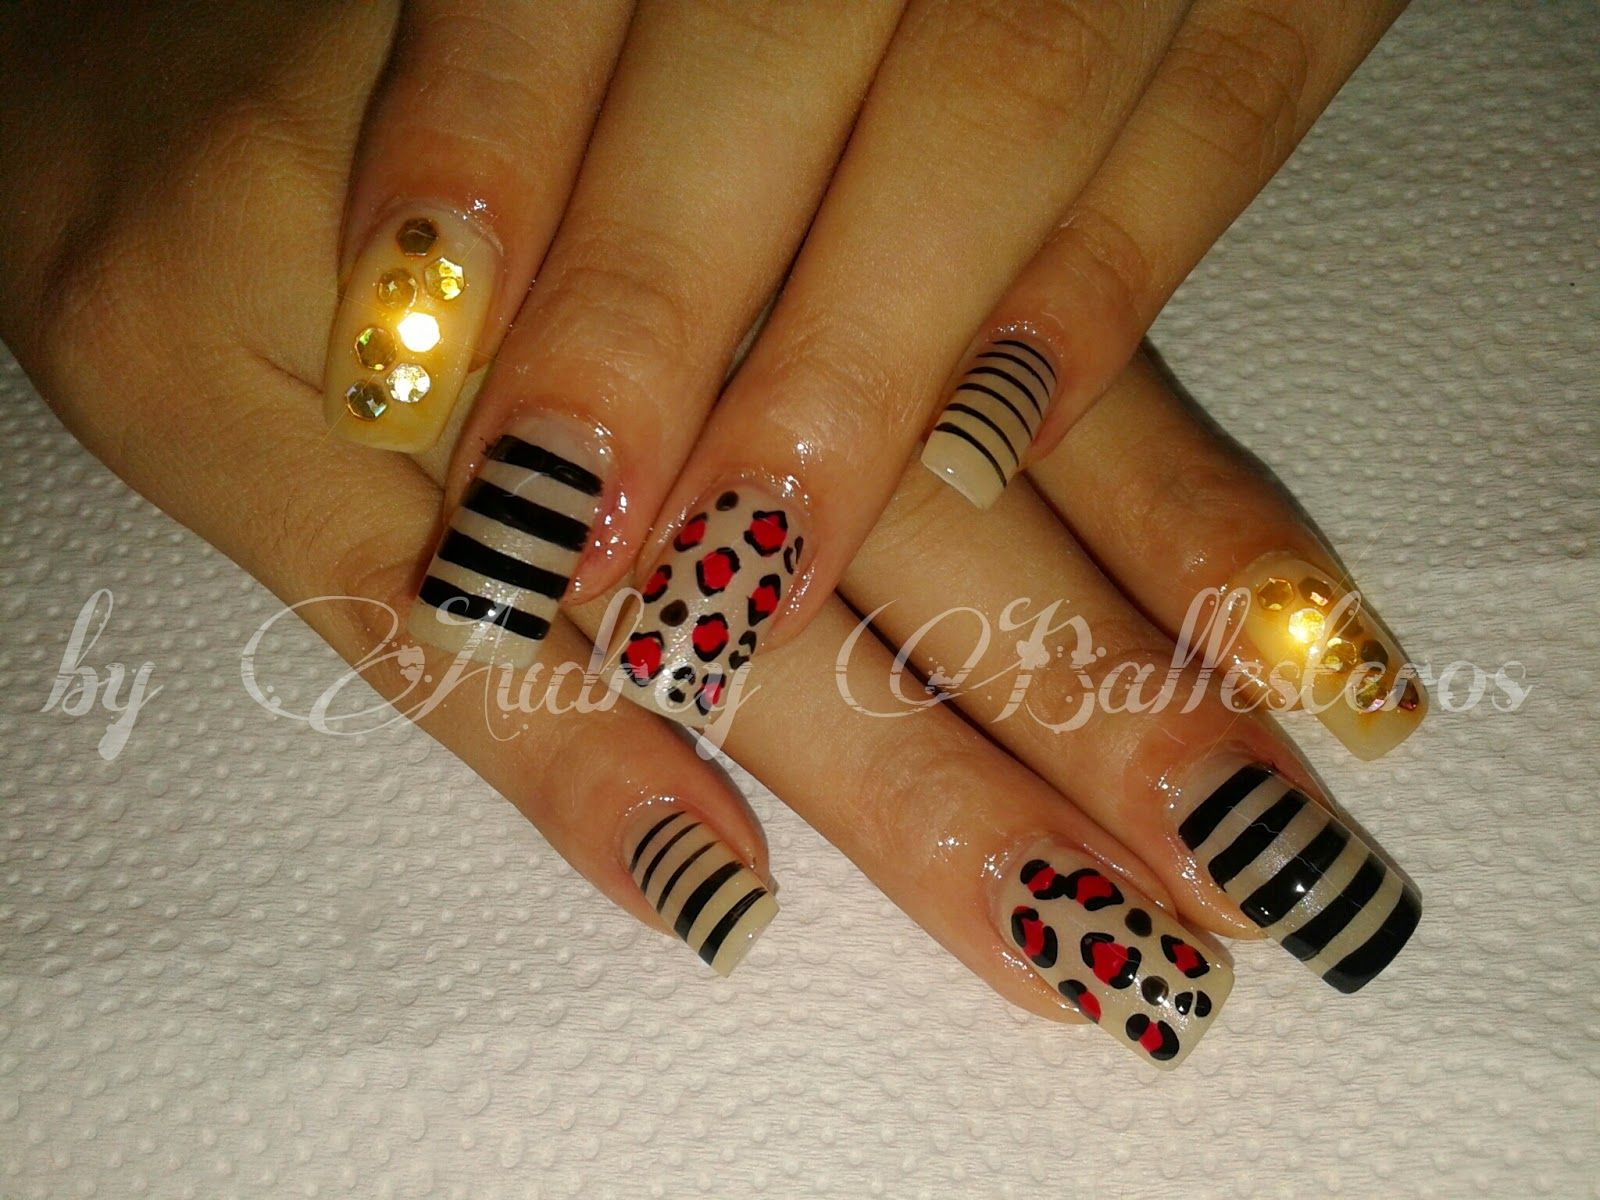 Uñas De Gel Decoradas Sencillas Pin De Margarita Cadenas En Uñas Decoradas Pinterest